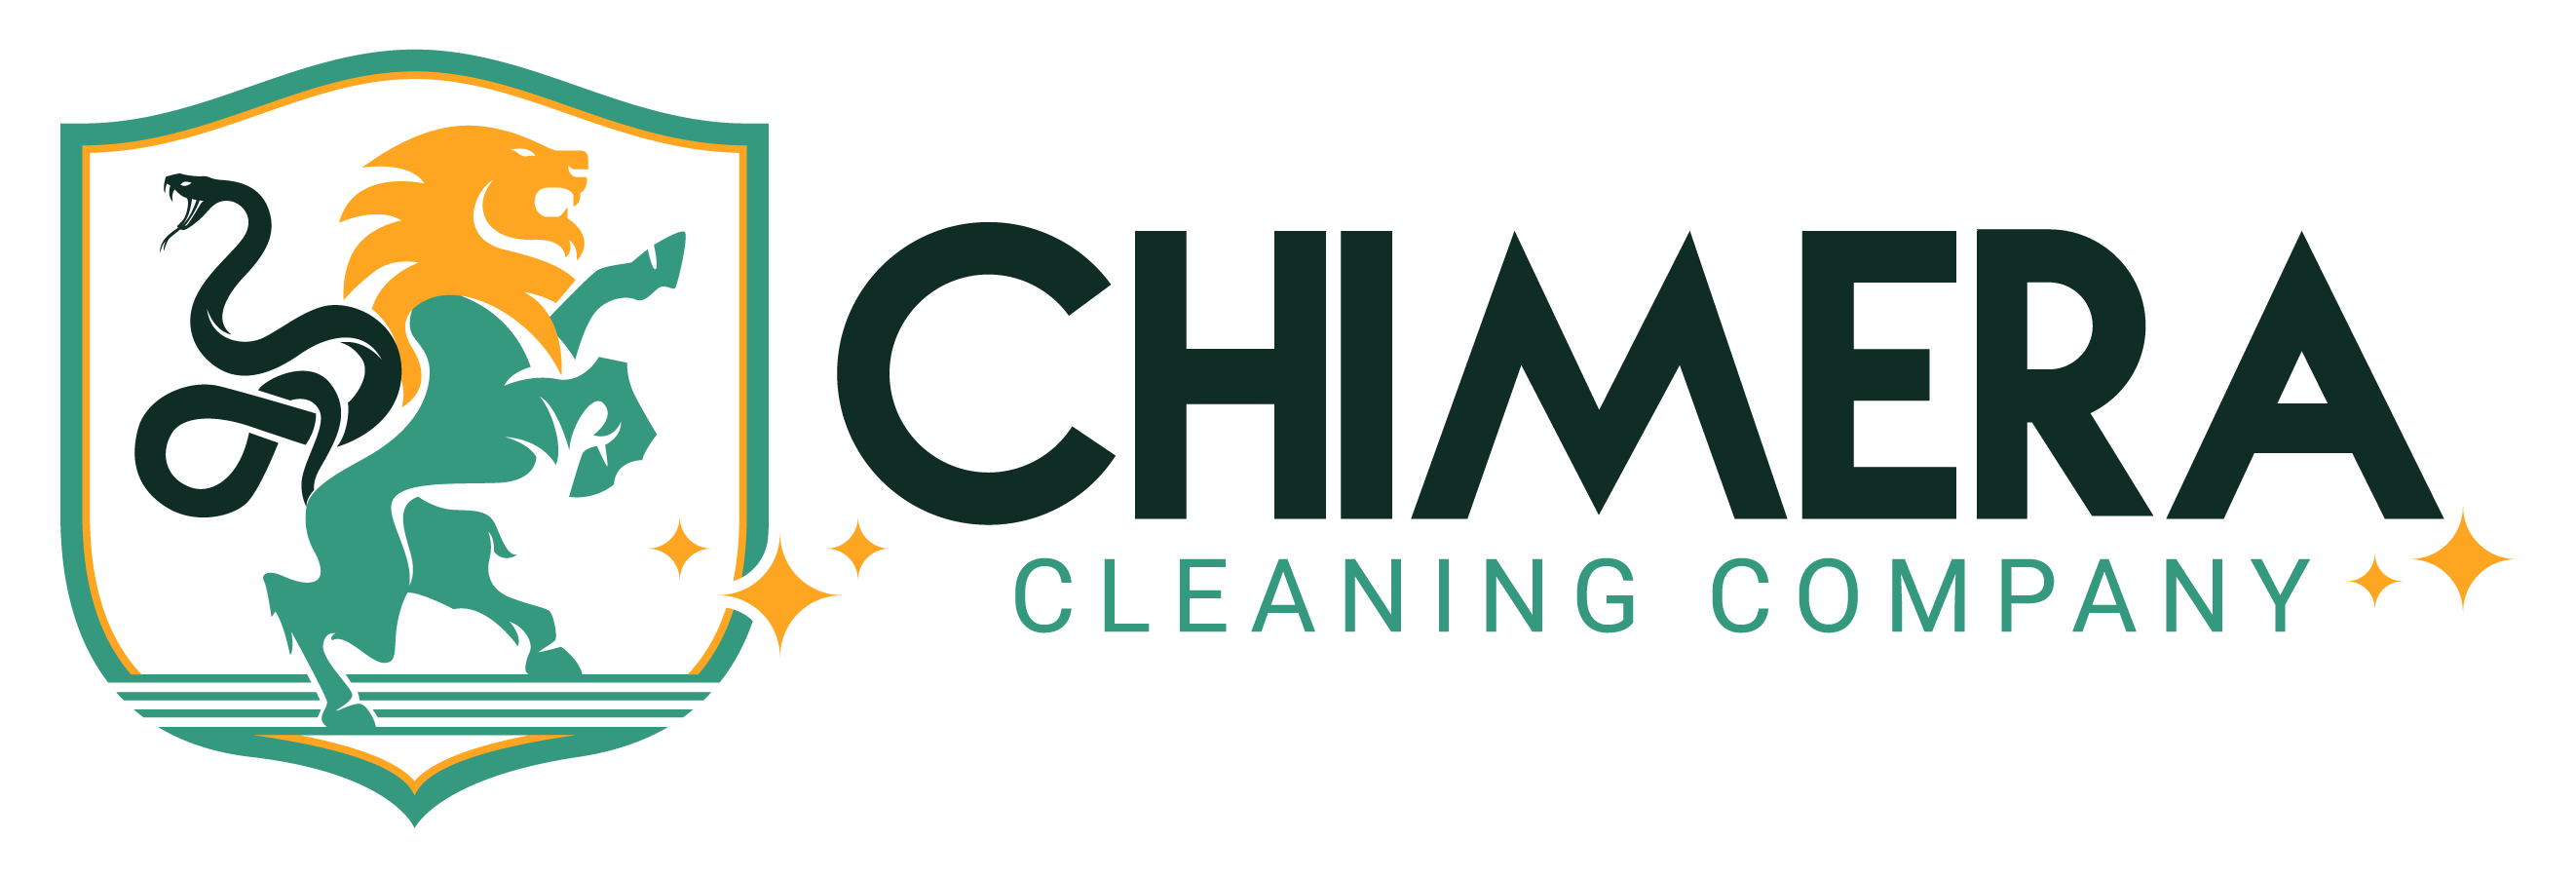 chimera cleaning company